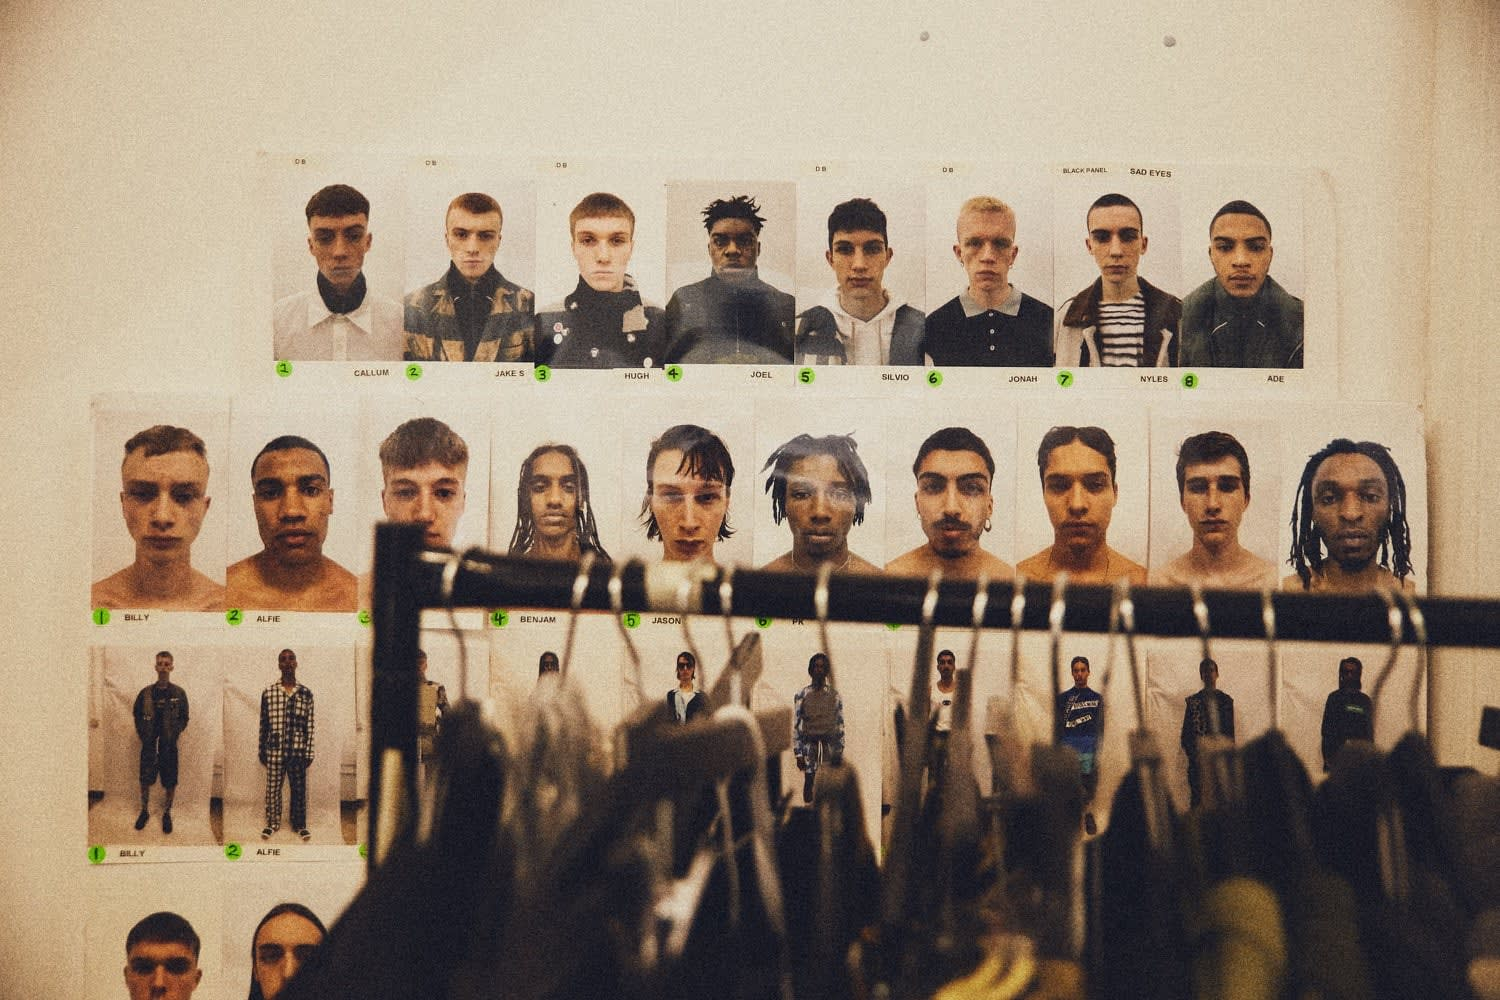 A wall of polaroid shots of the models cast for Liam Hodges' upcoming fashion show